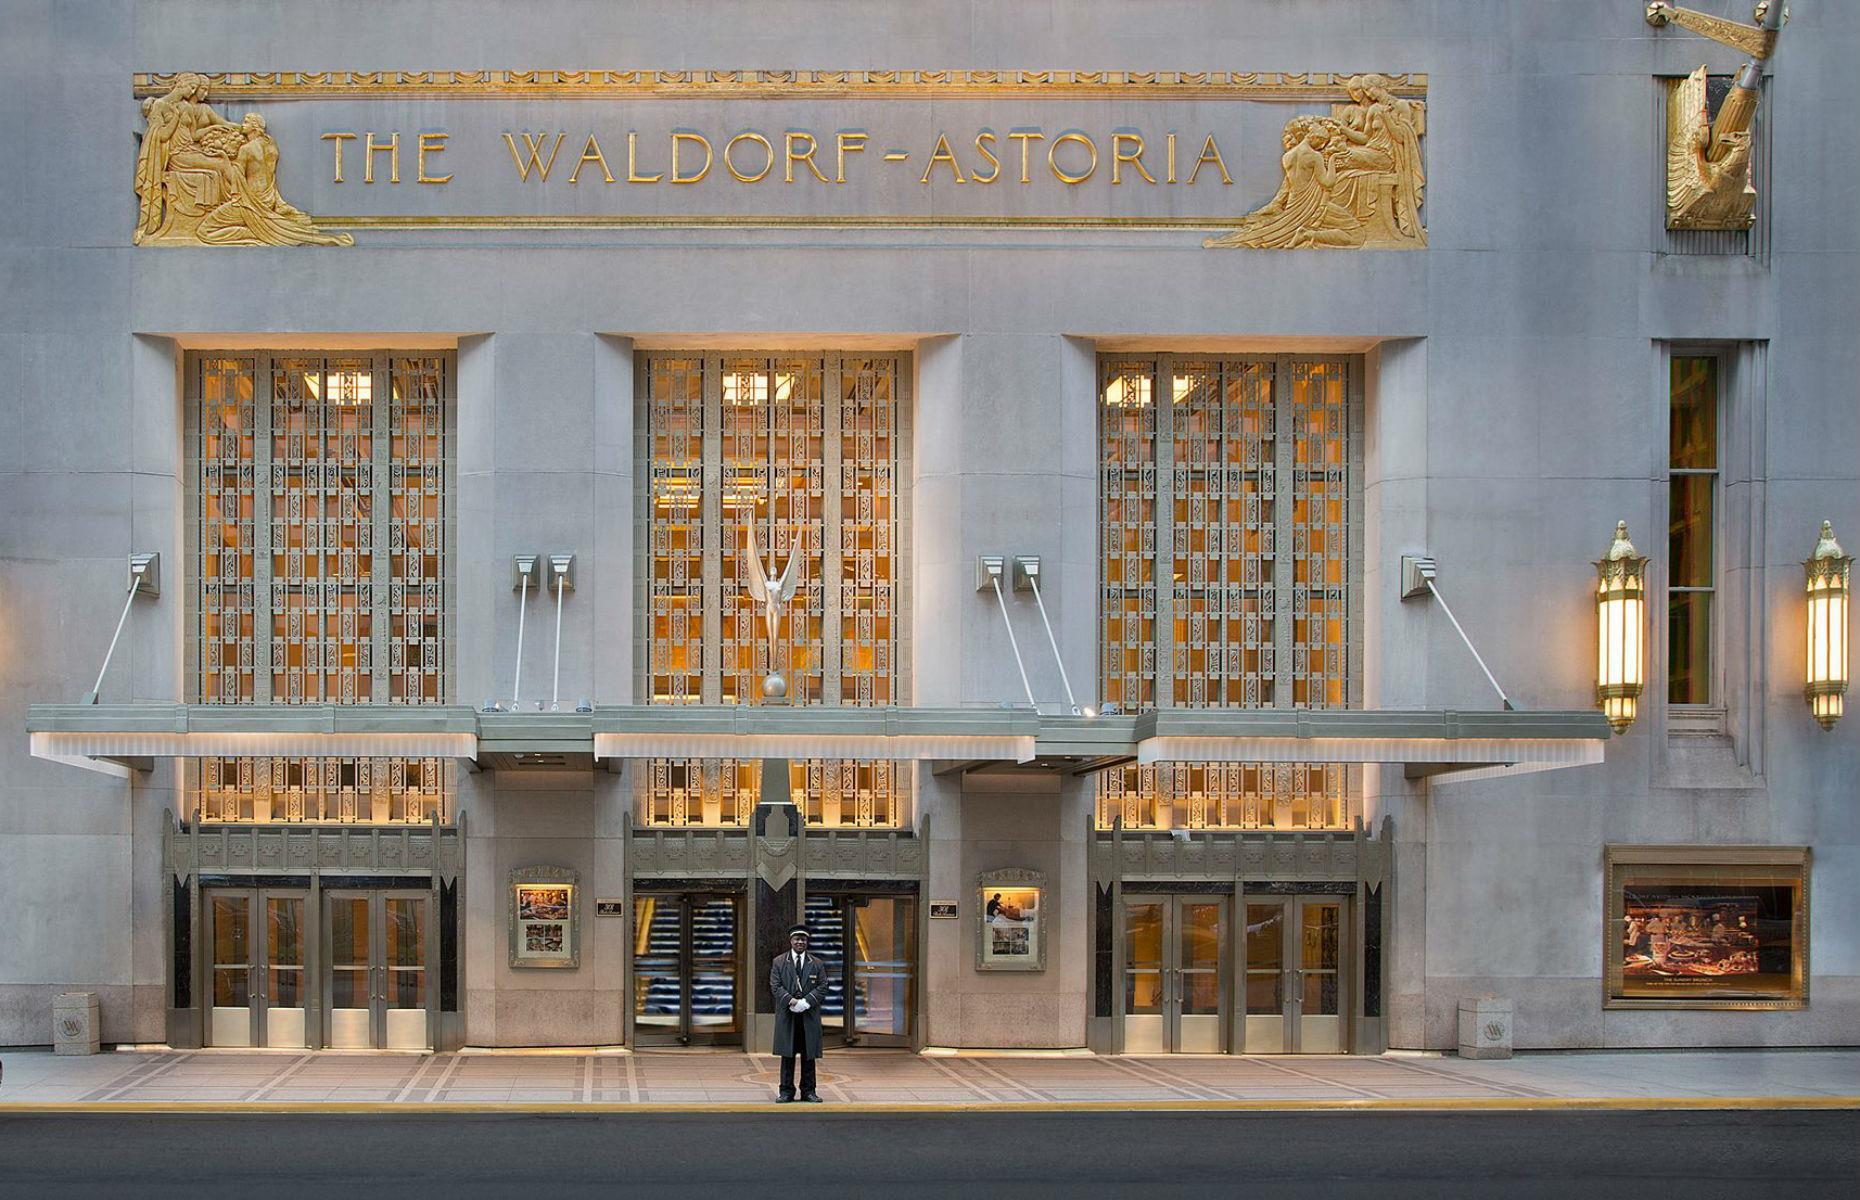 Slide 30 of 45: New York's Waldorf Astoria hotel is a historic establishment that has hosted royalty, presidents and film stars over its long history. It's currently closed for refurbishment and isn't planned to reopen until 2021.